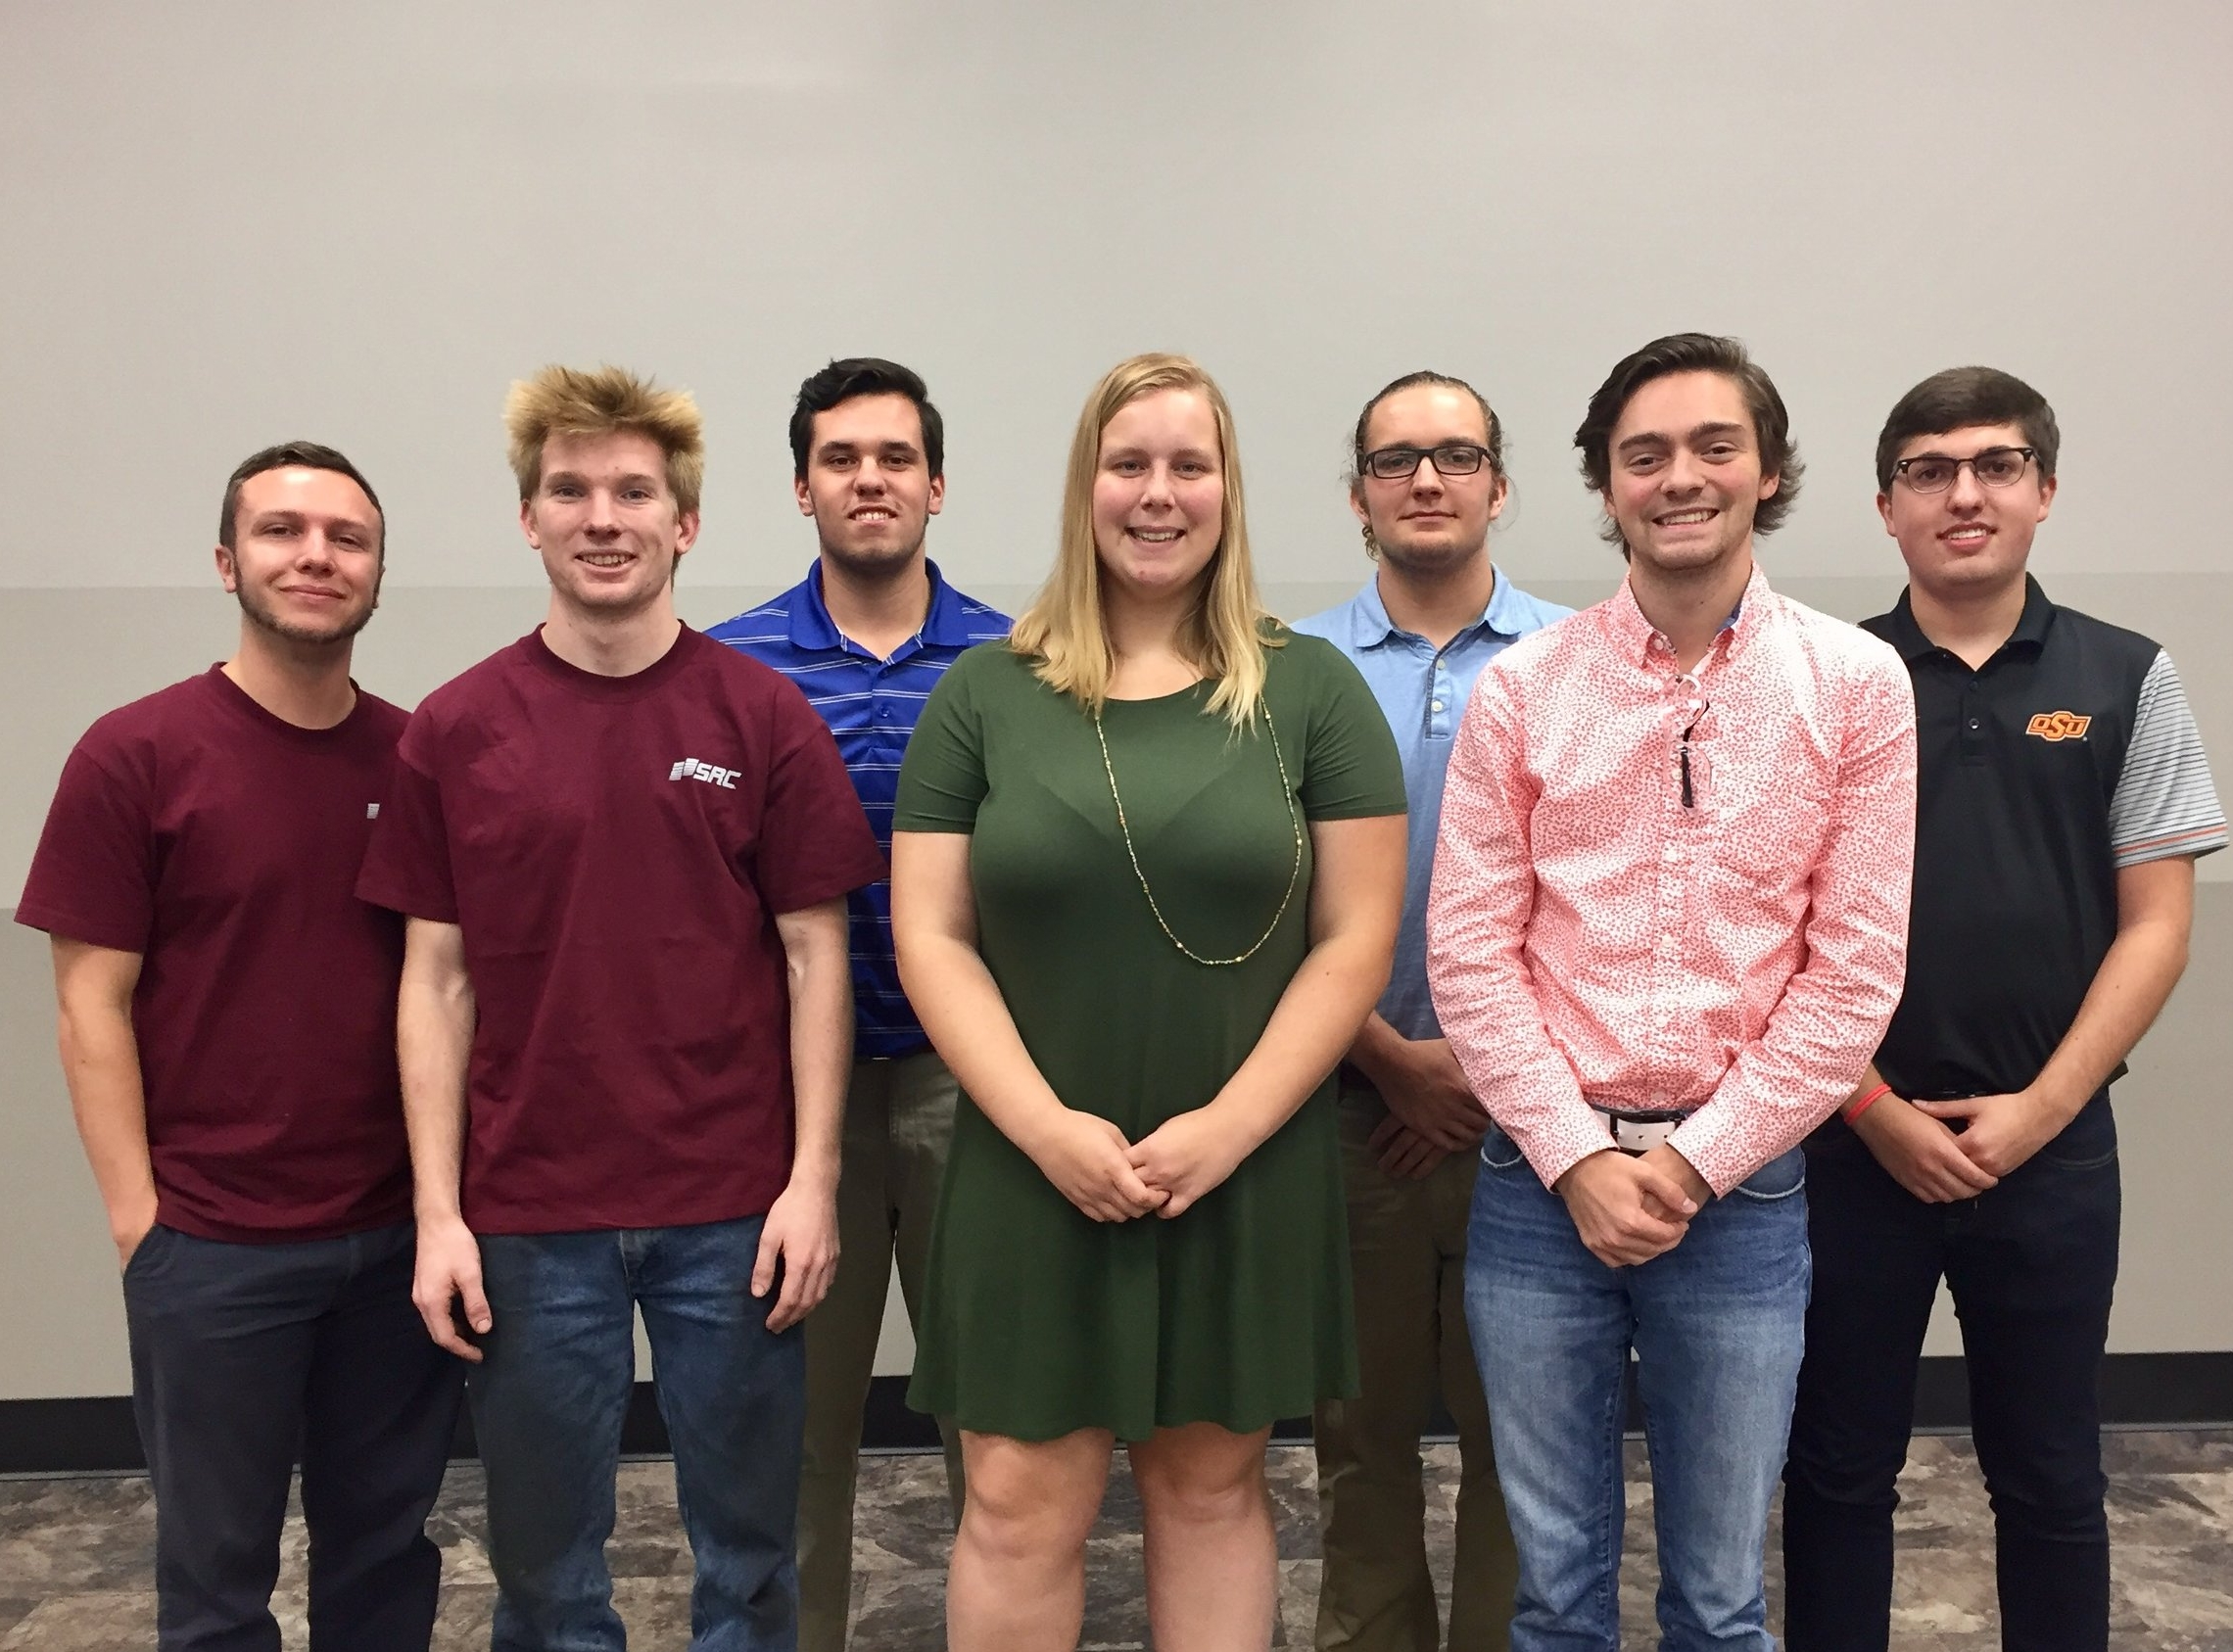 Springfield Remanufacturing Corp.'s Heavy Duty Interns presented their summer projects to their superiors on August 4, 2017. Back row: Colton Chastain (Human Resources), Peyton Stauffer (Accounting), Westin Easley (Engineering), Logan Kunkel (Supply Chain). Front row: Bailey Fletcher (Engineering), Katlyn Maas (Engineering), Tommy Giovanni (Accounting).